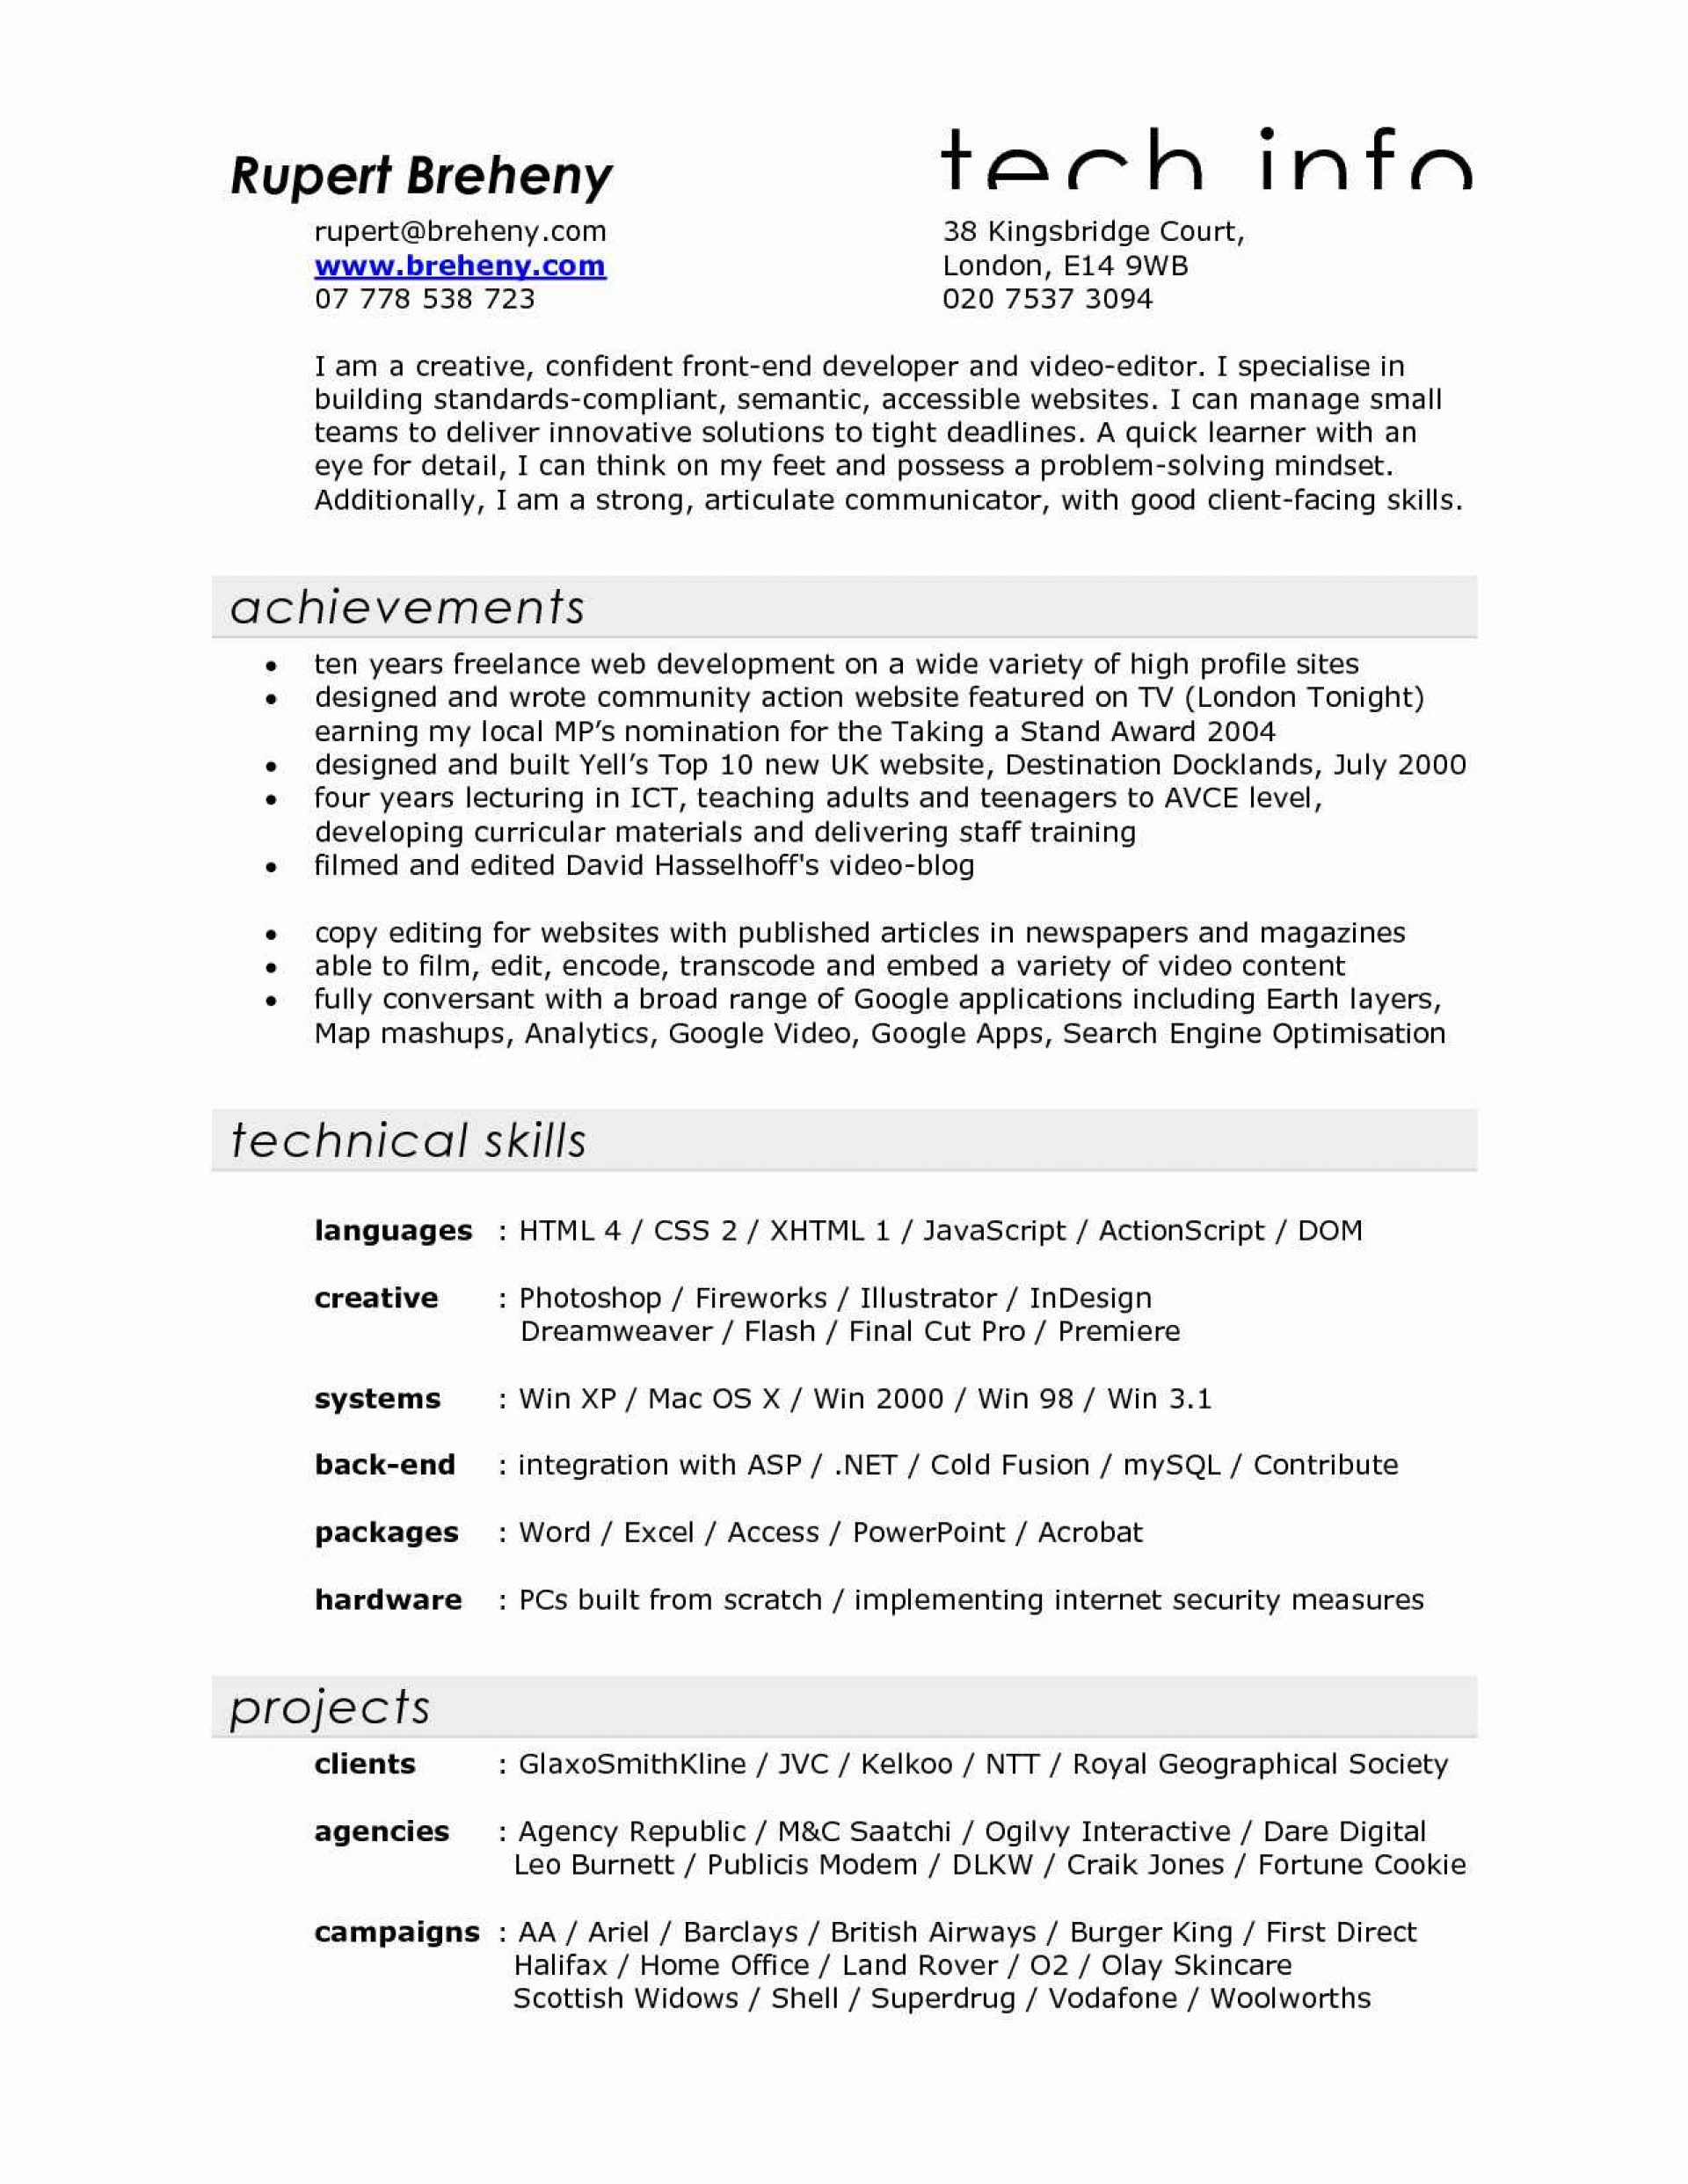 006 Essay Example Film Director Resume Template Inspirational Gre Awa Analytical Writing Solutions To The Real Topics Pdf Free Downlo Book Books Download Test Prep Incredible 1920